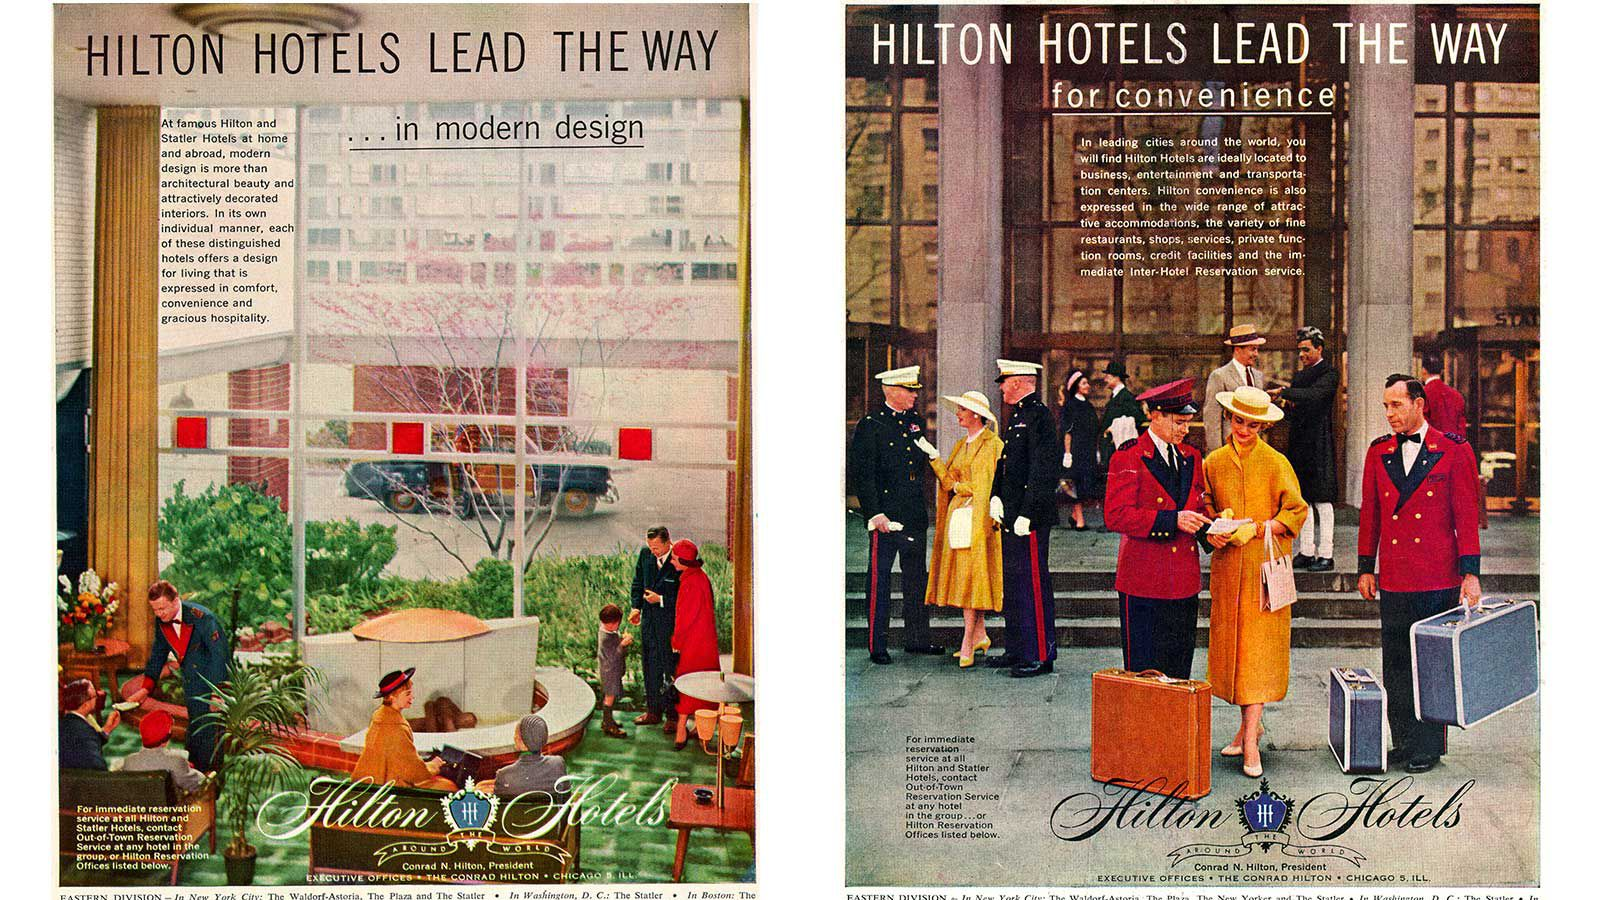 Vintage Hilton Hotels advertisements from the 1950s